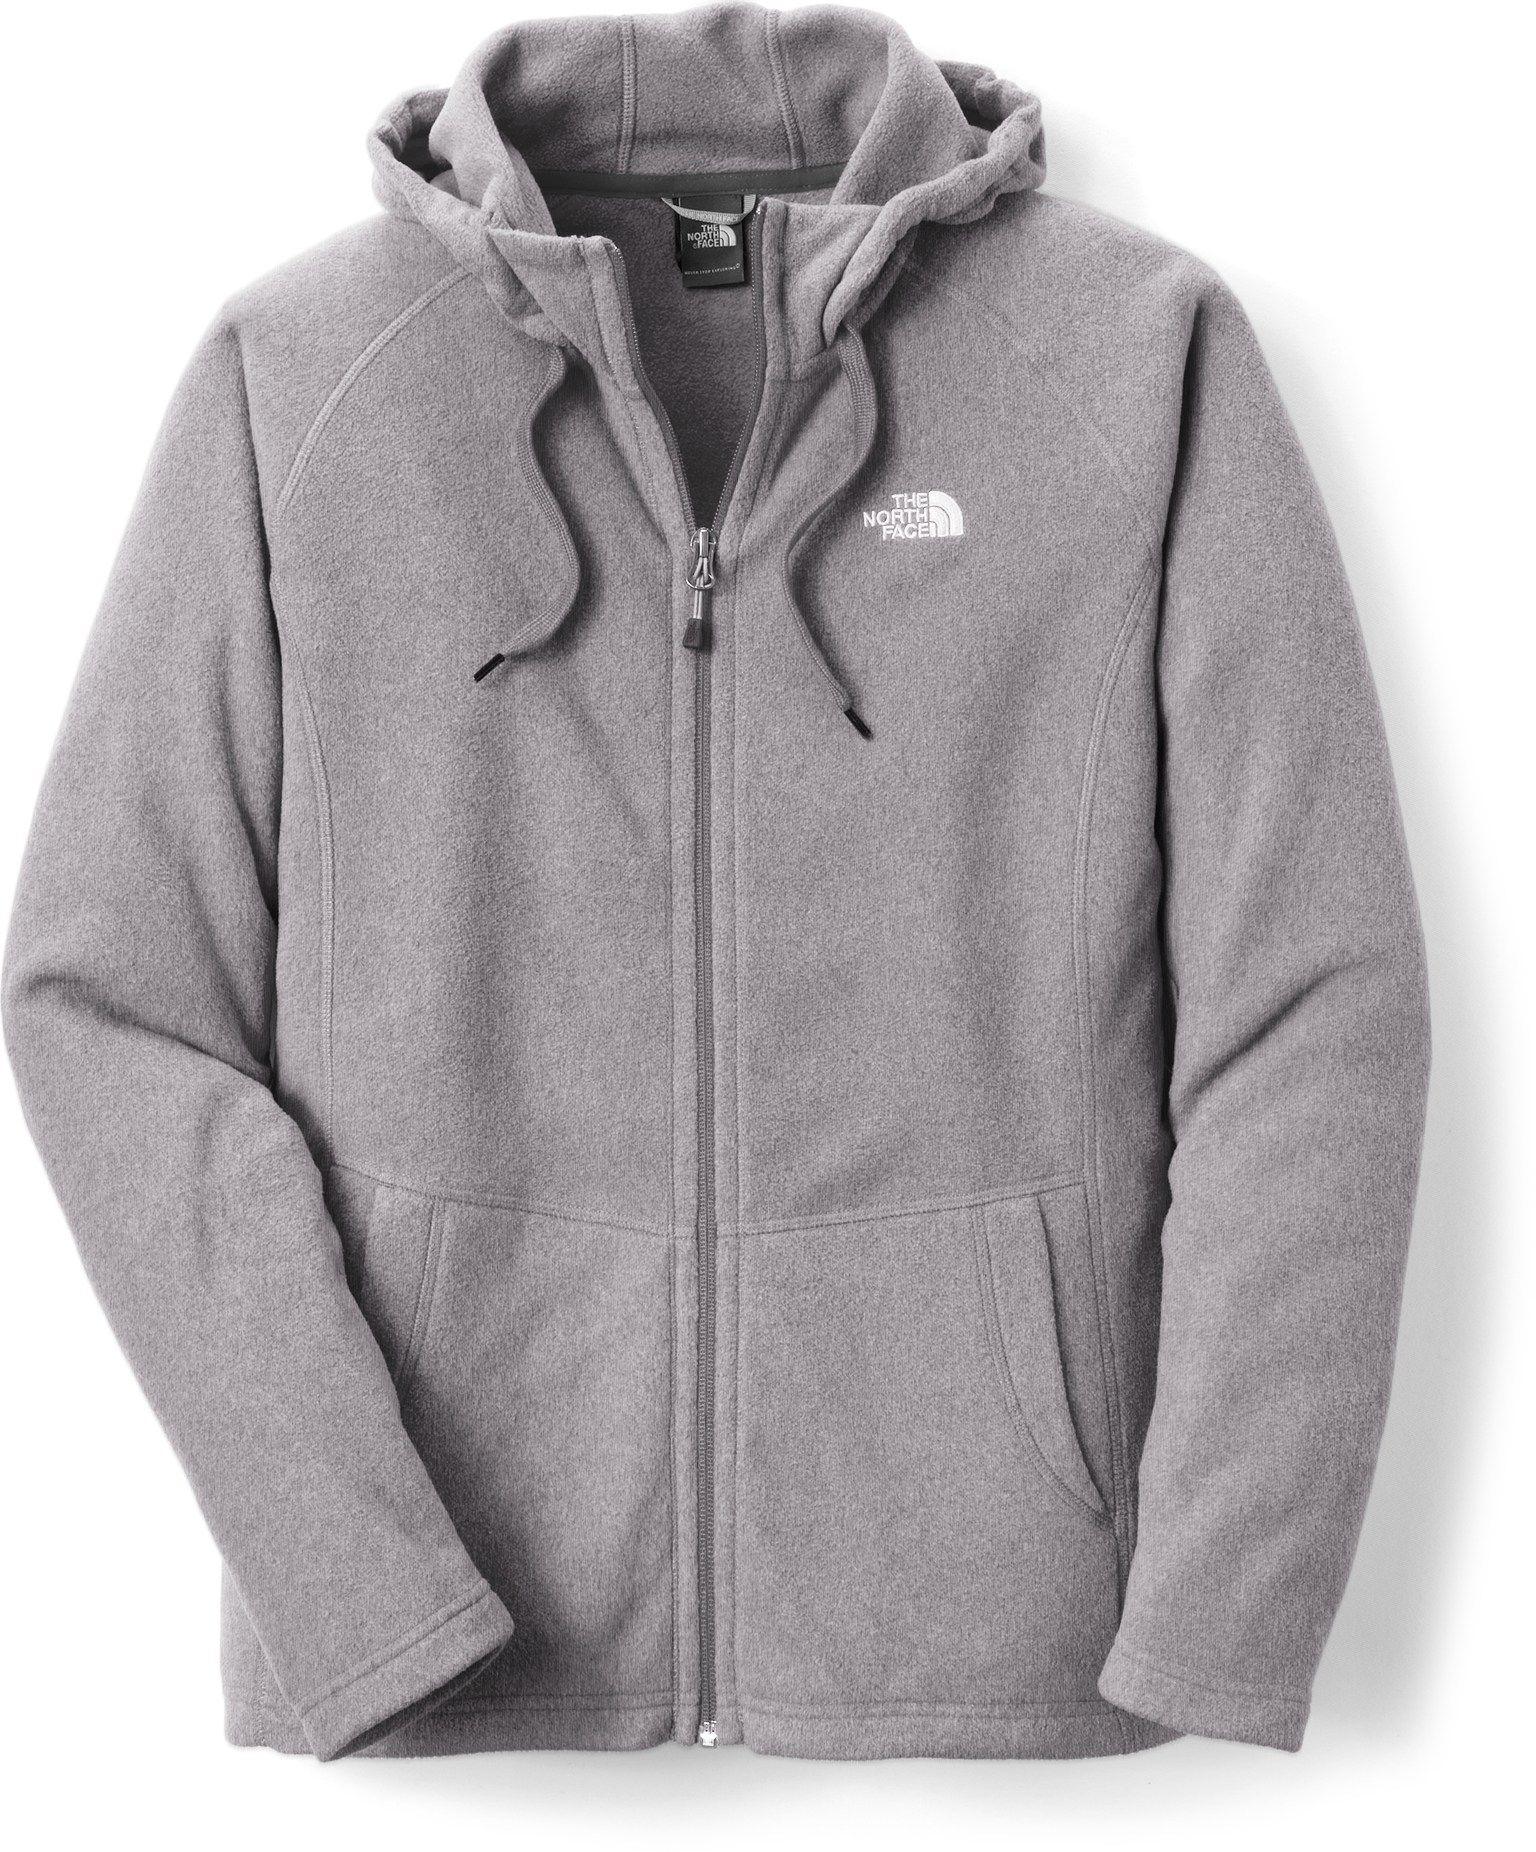 3faccdfe8 Luna Hoodie | Stuff for me | Hoodies, Hooded jacket, The north face